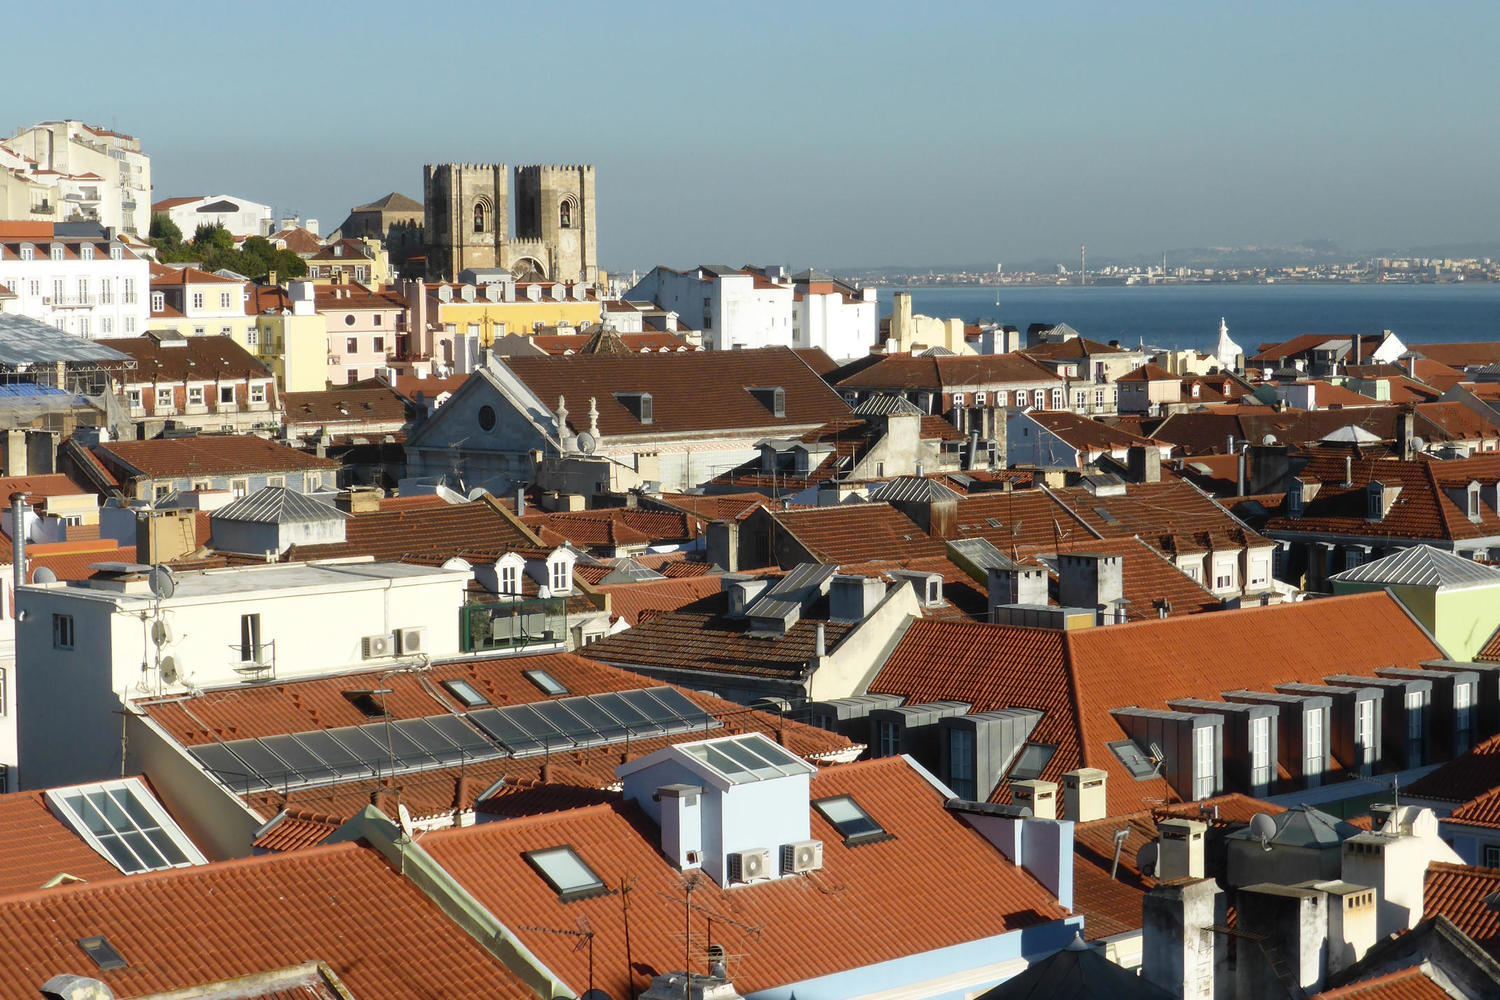 Skyline view over Lisbon